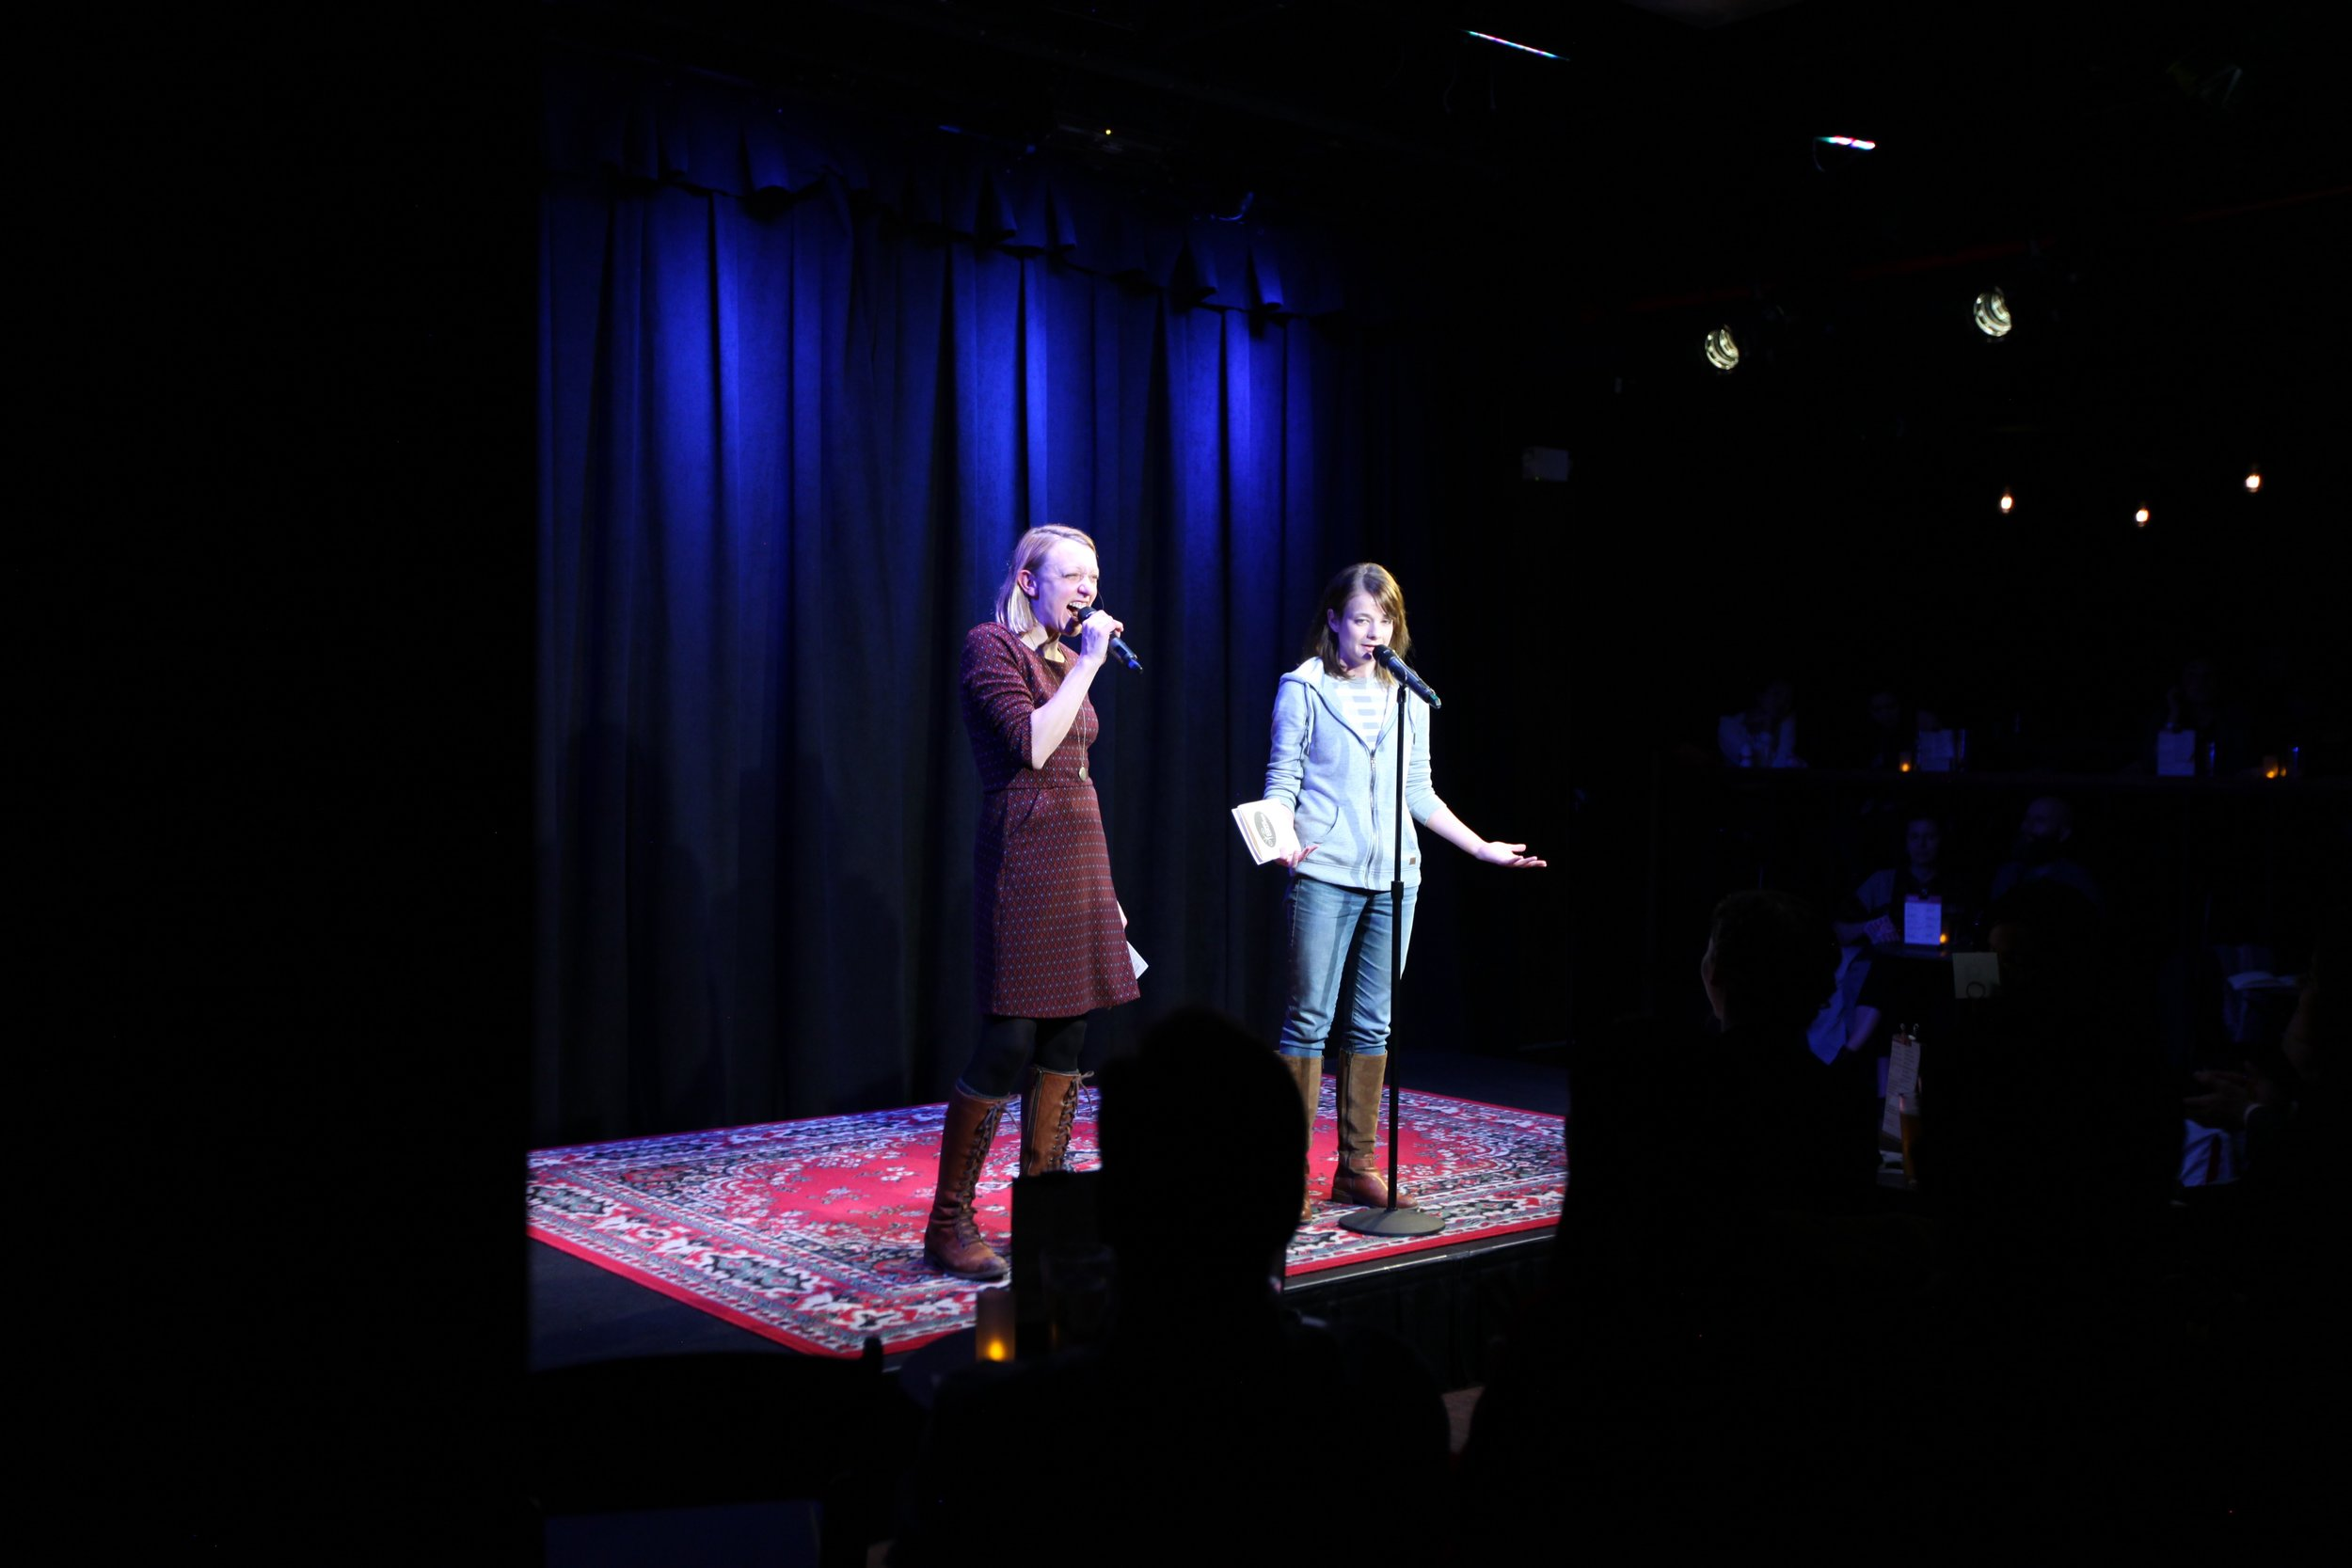 Paula Croxson (left) and Erin Barker (right) host the Story Collider show